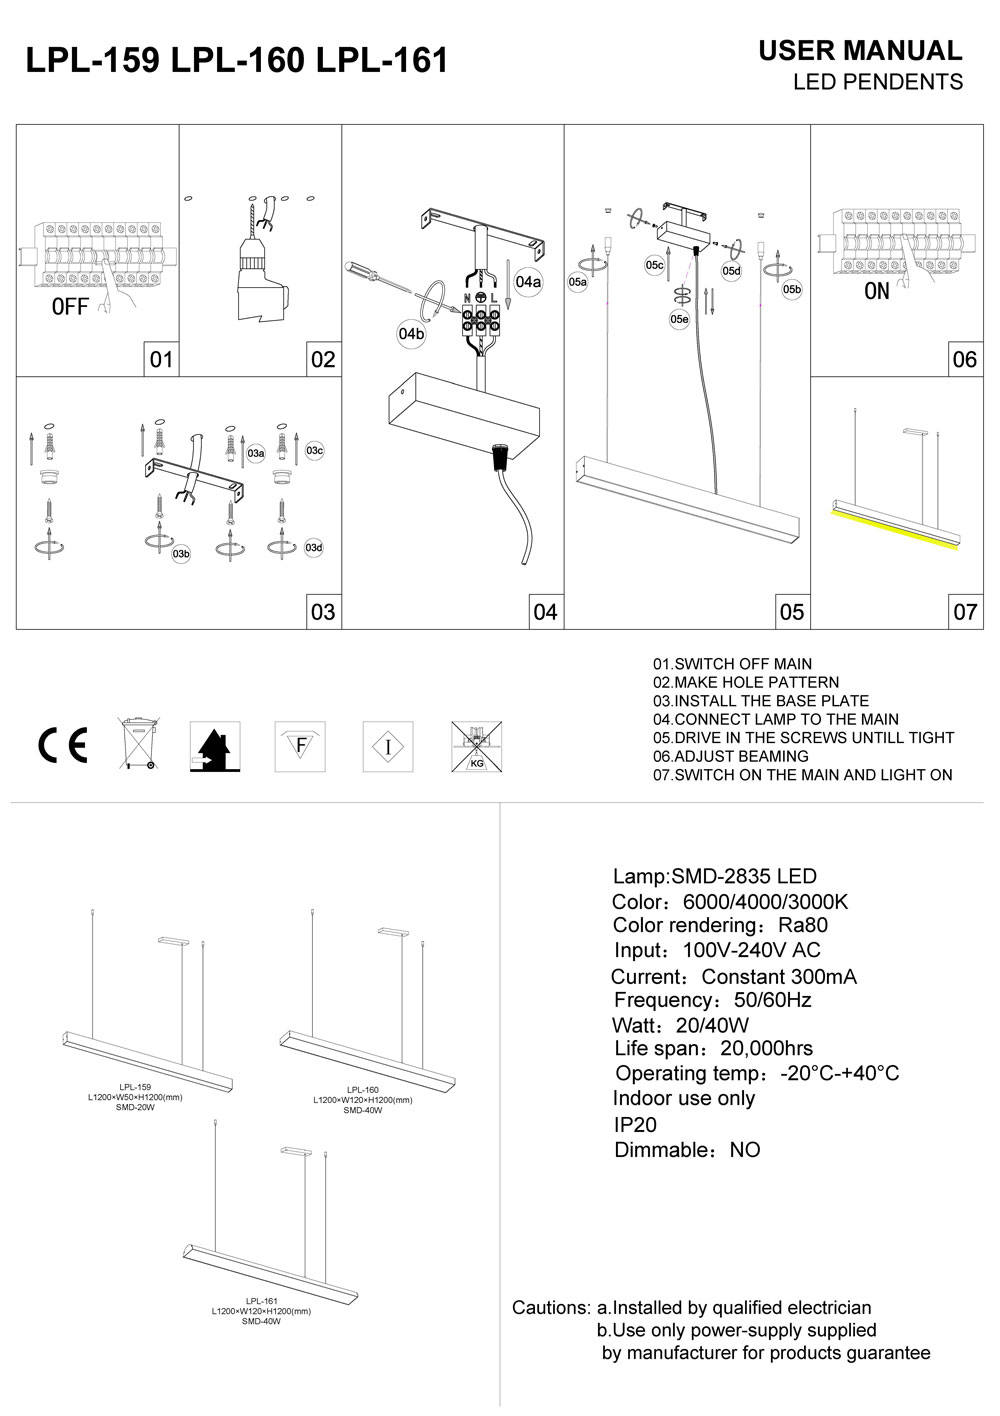 LPL-159-LPL-160-LPL-161 LED pendant lamp installation guide